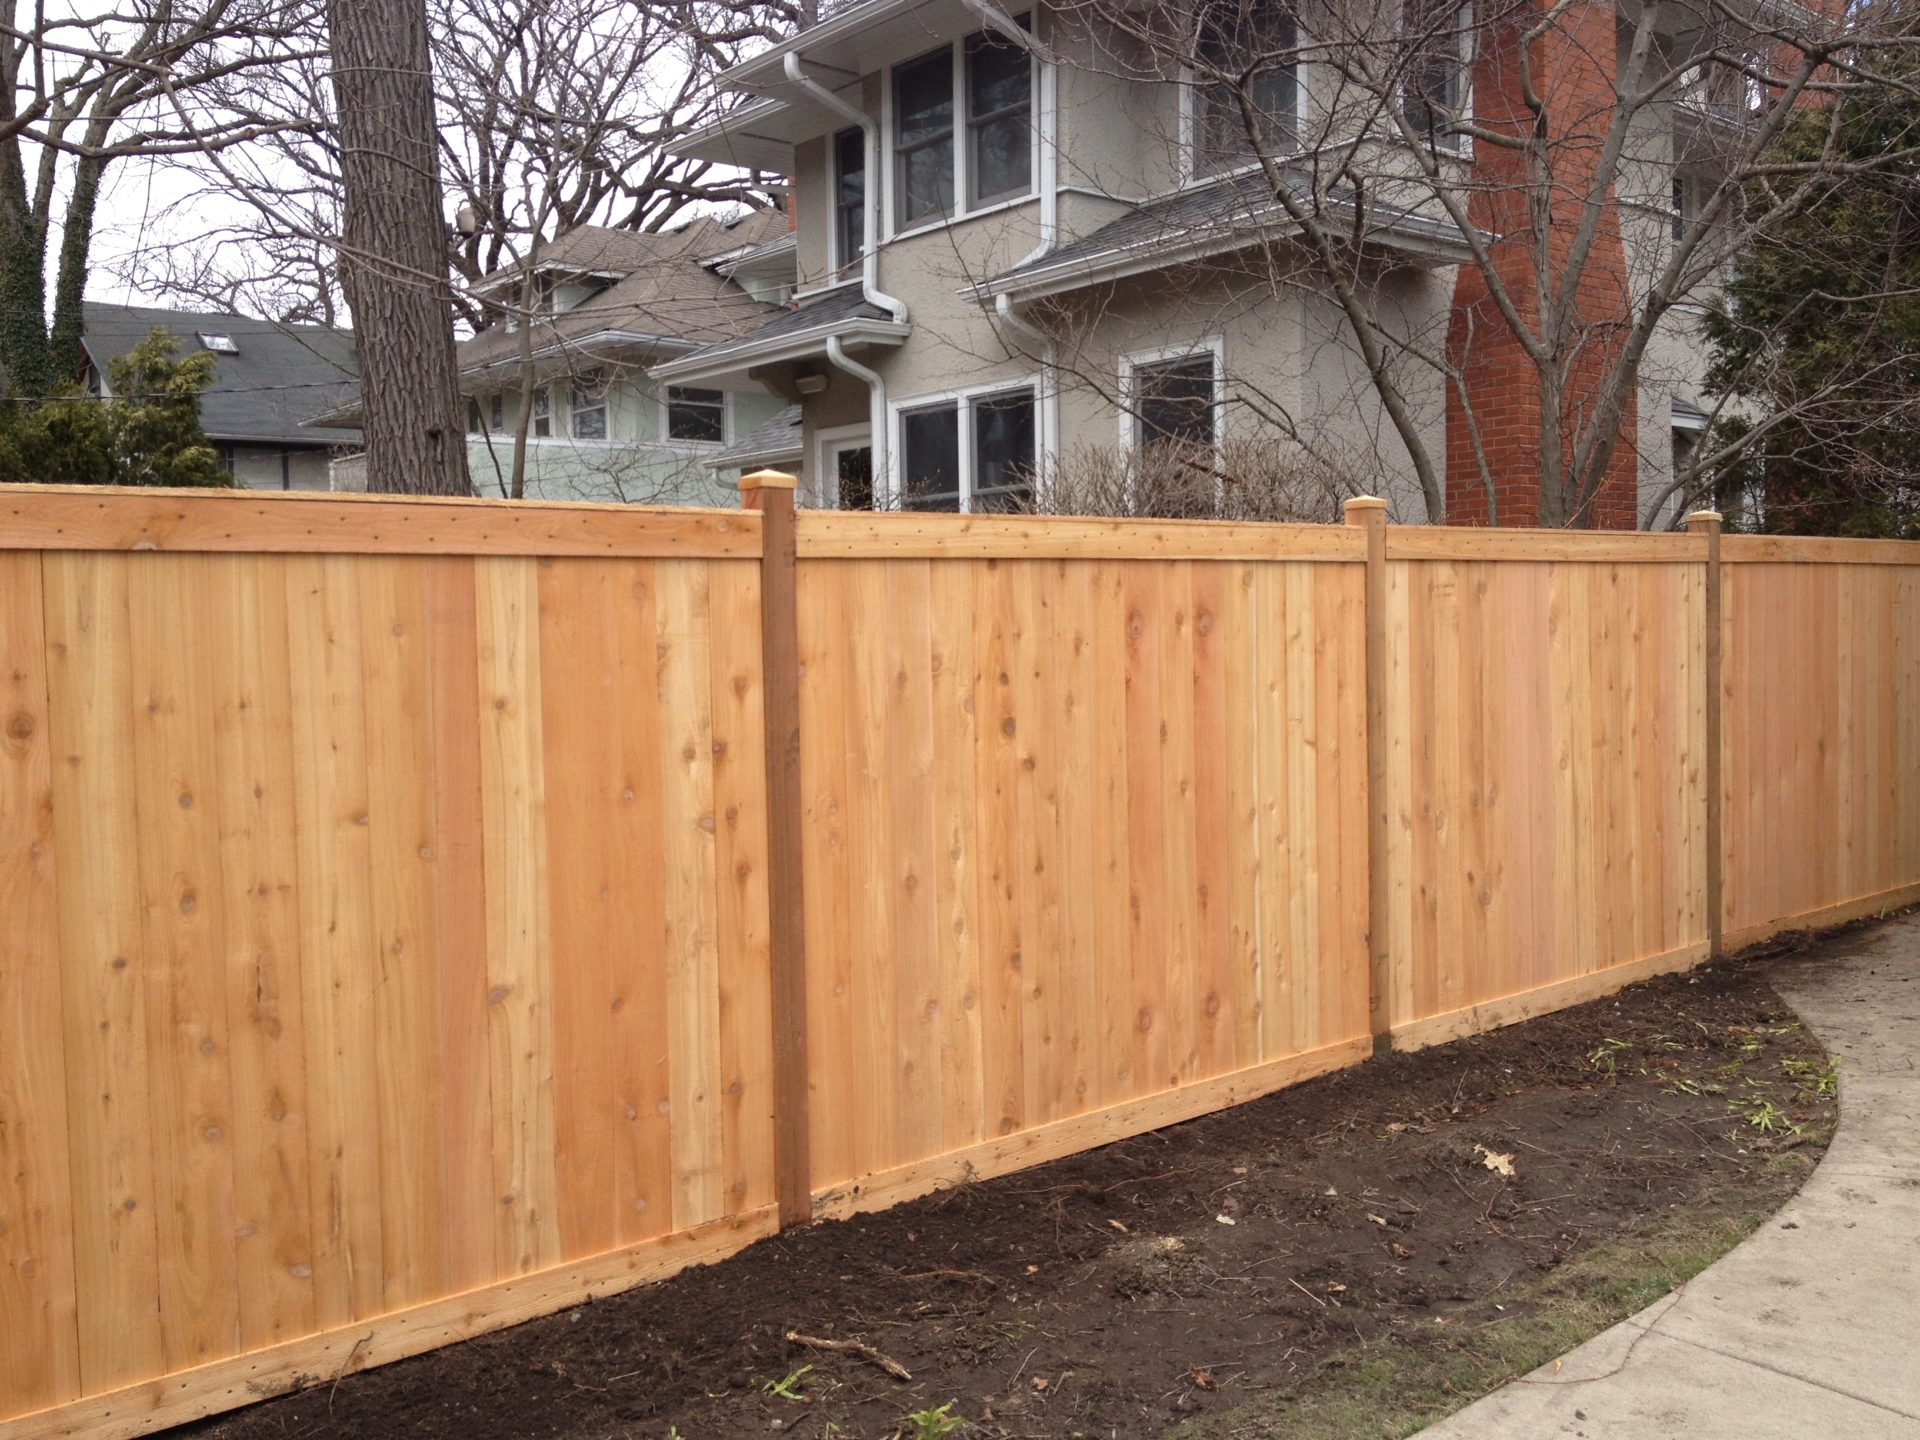 Fencing company fence insallation repairs family